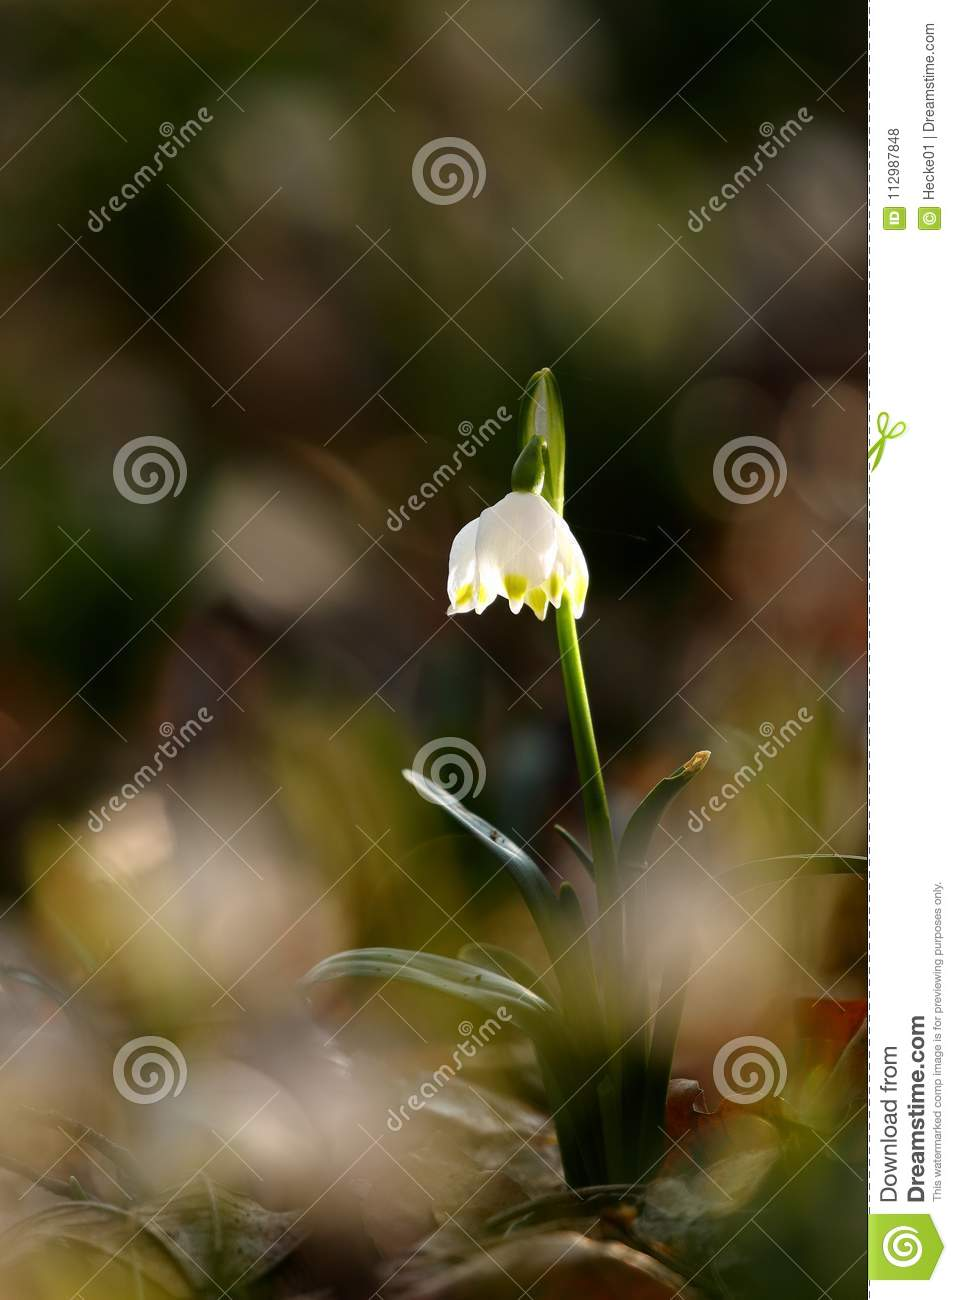 Marching flower with blossom in spring